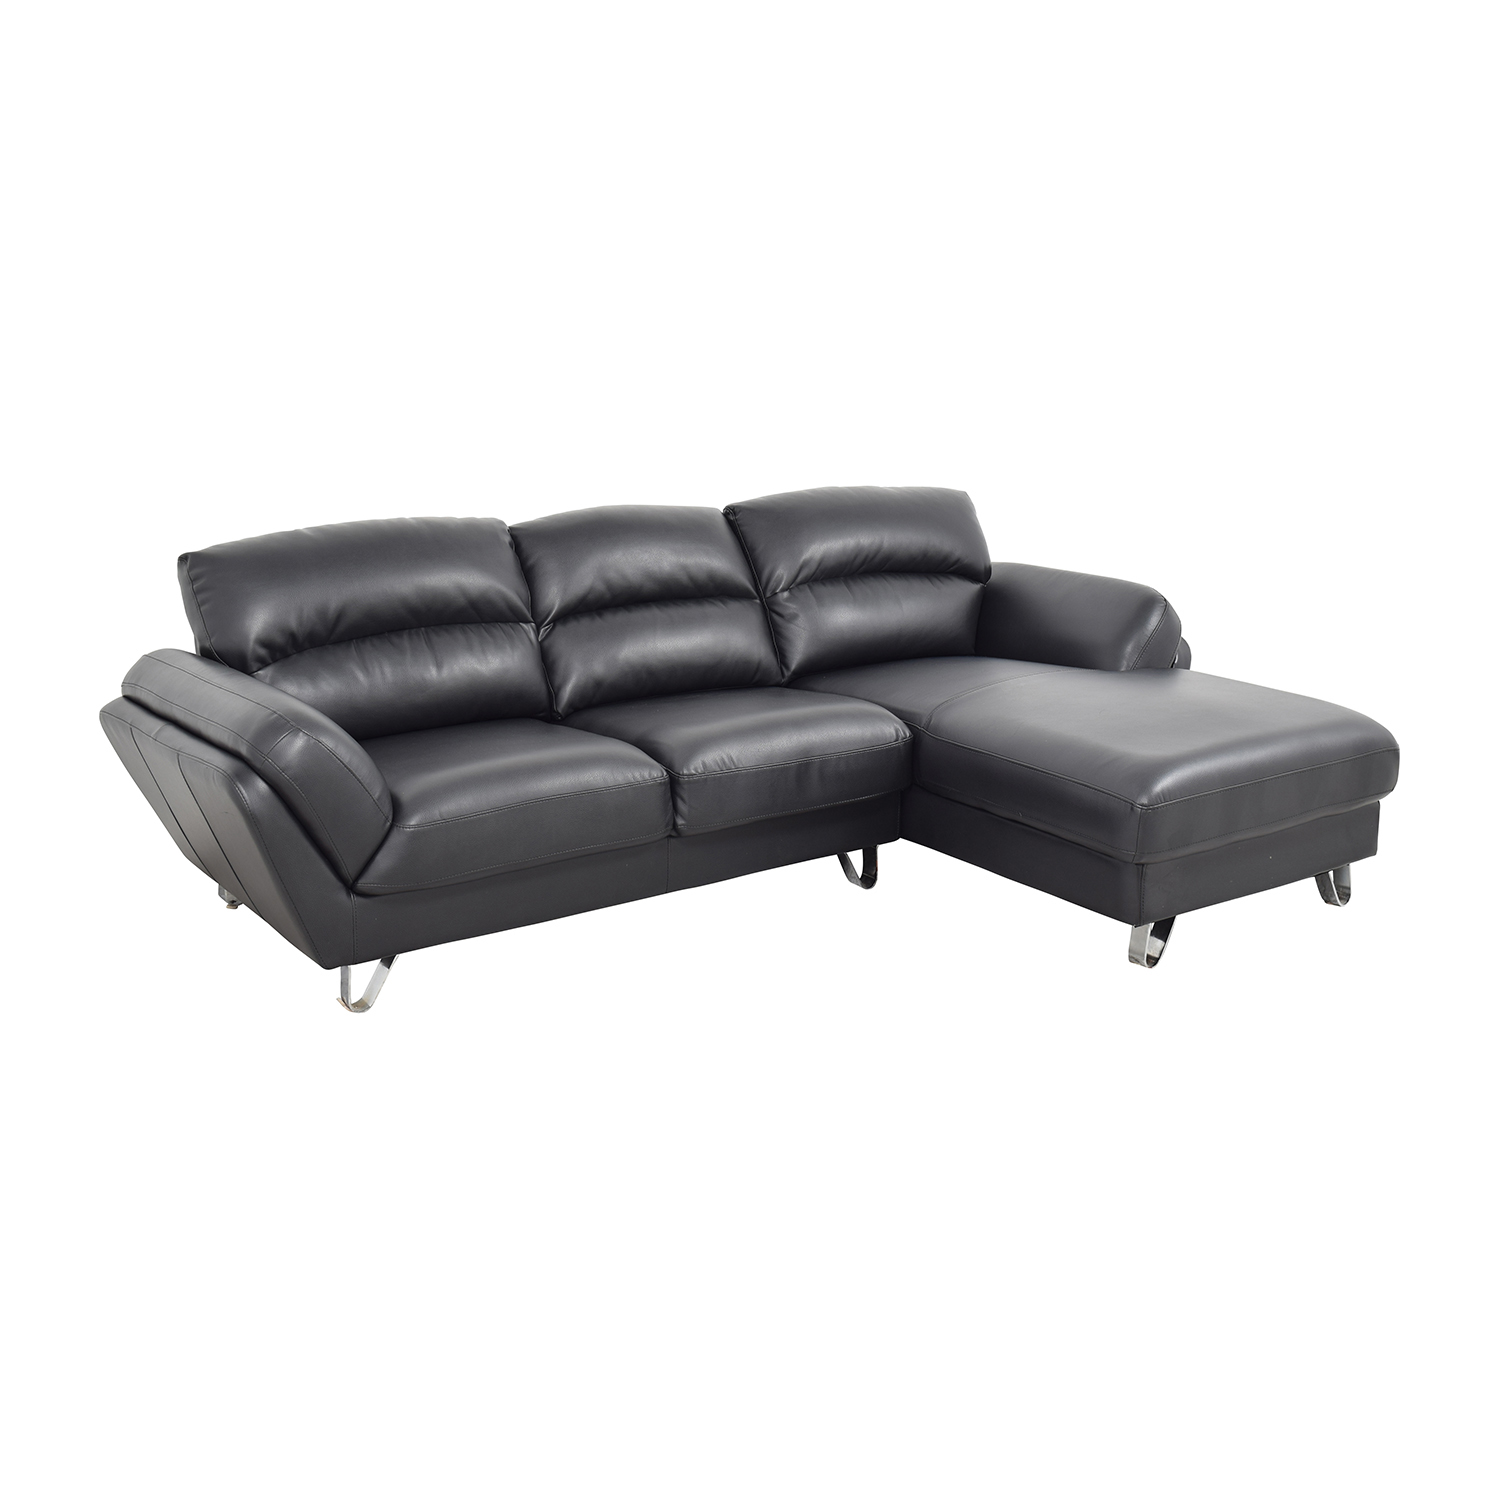 Contemporary Faux Leather Two-piece Sectional Sofa / Sofas